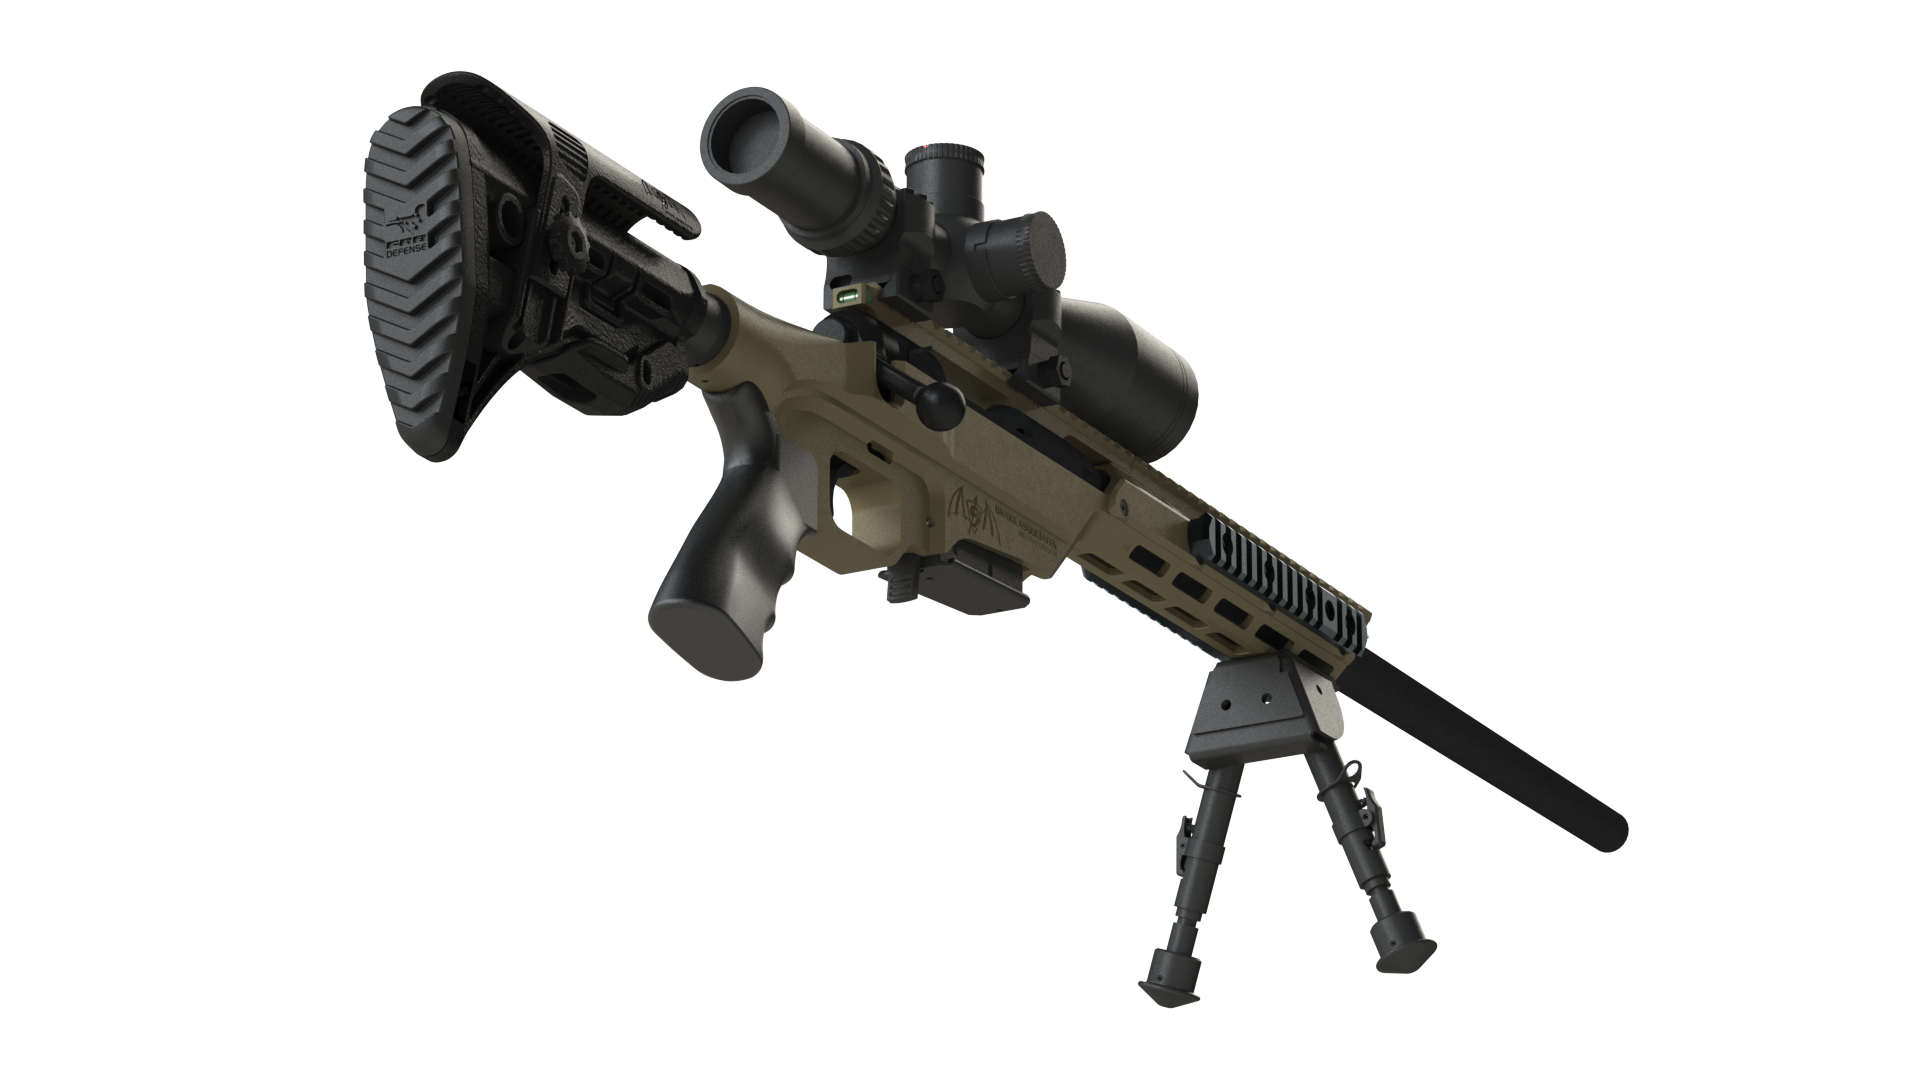 Animated Sniper PNG Image